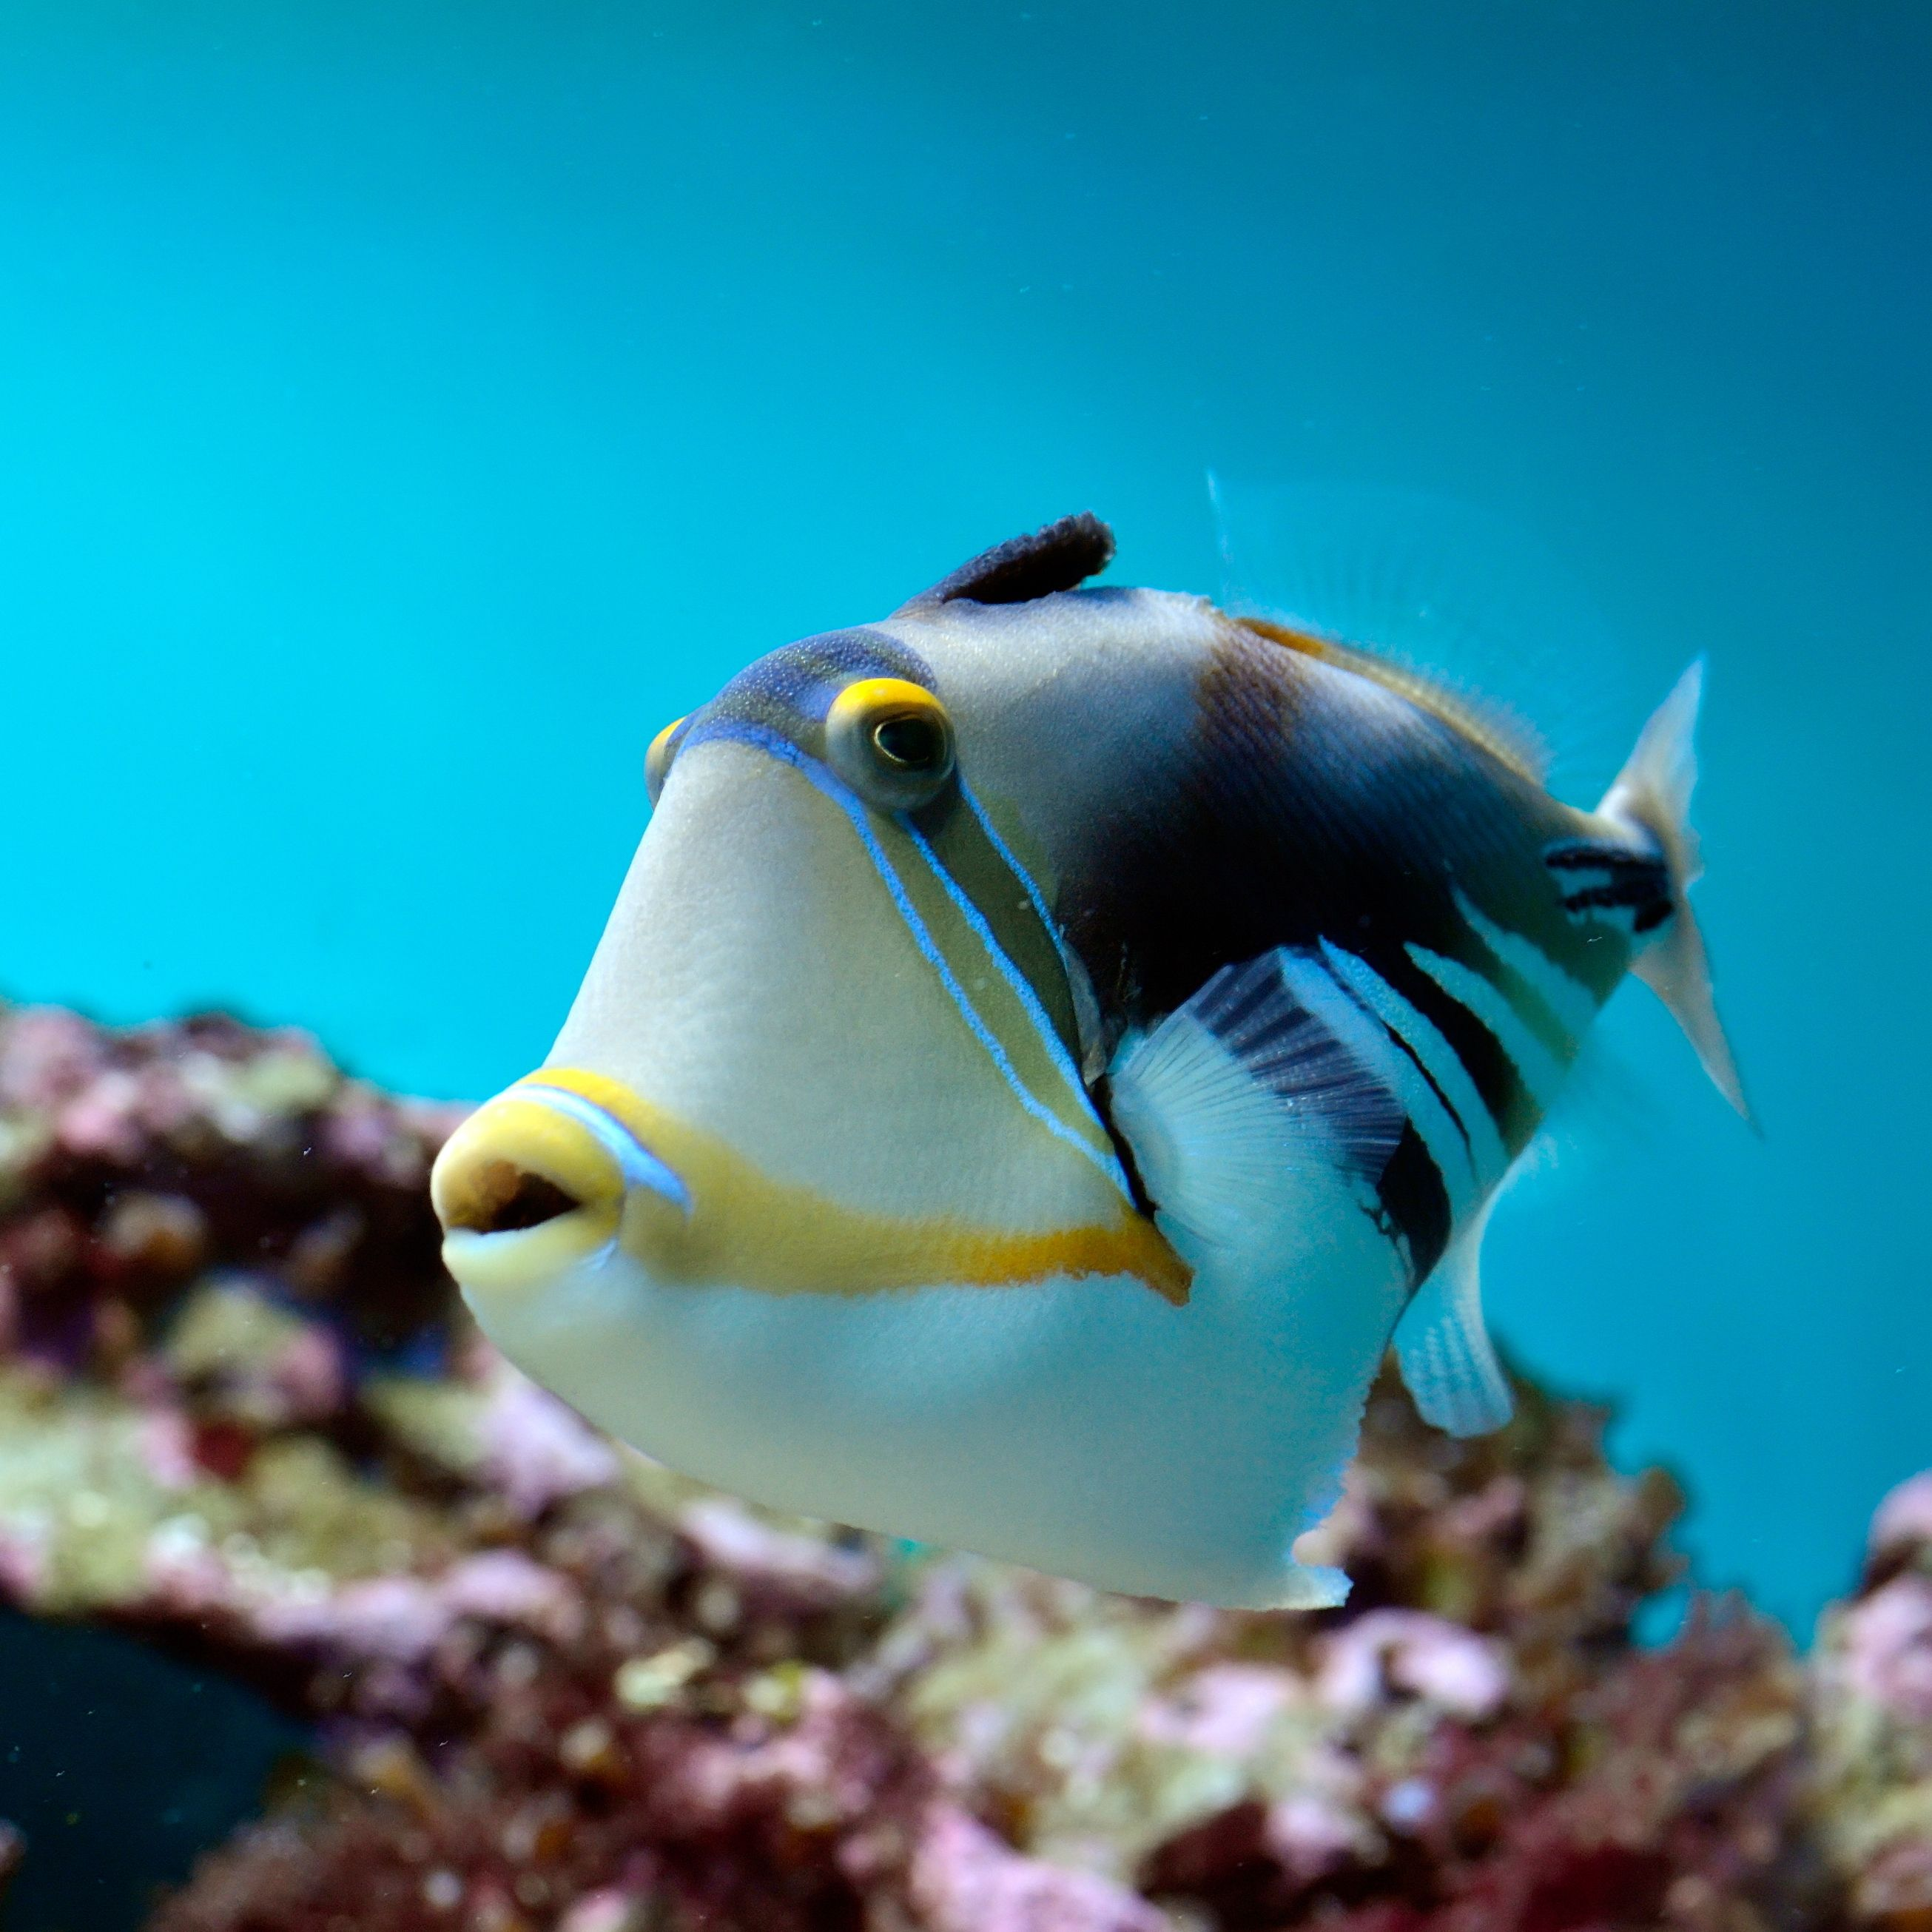 Freshwater fish of hawaii - Vibrant Colored Trigger Fish Hawaii S Fish Humuhumunukunukuapua A The Fish With The Pig